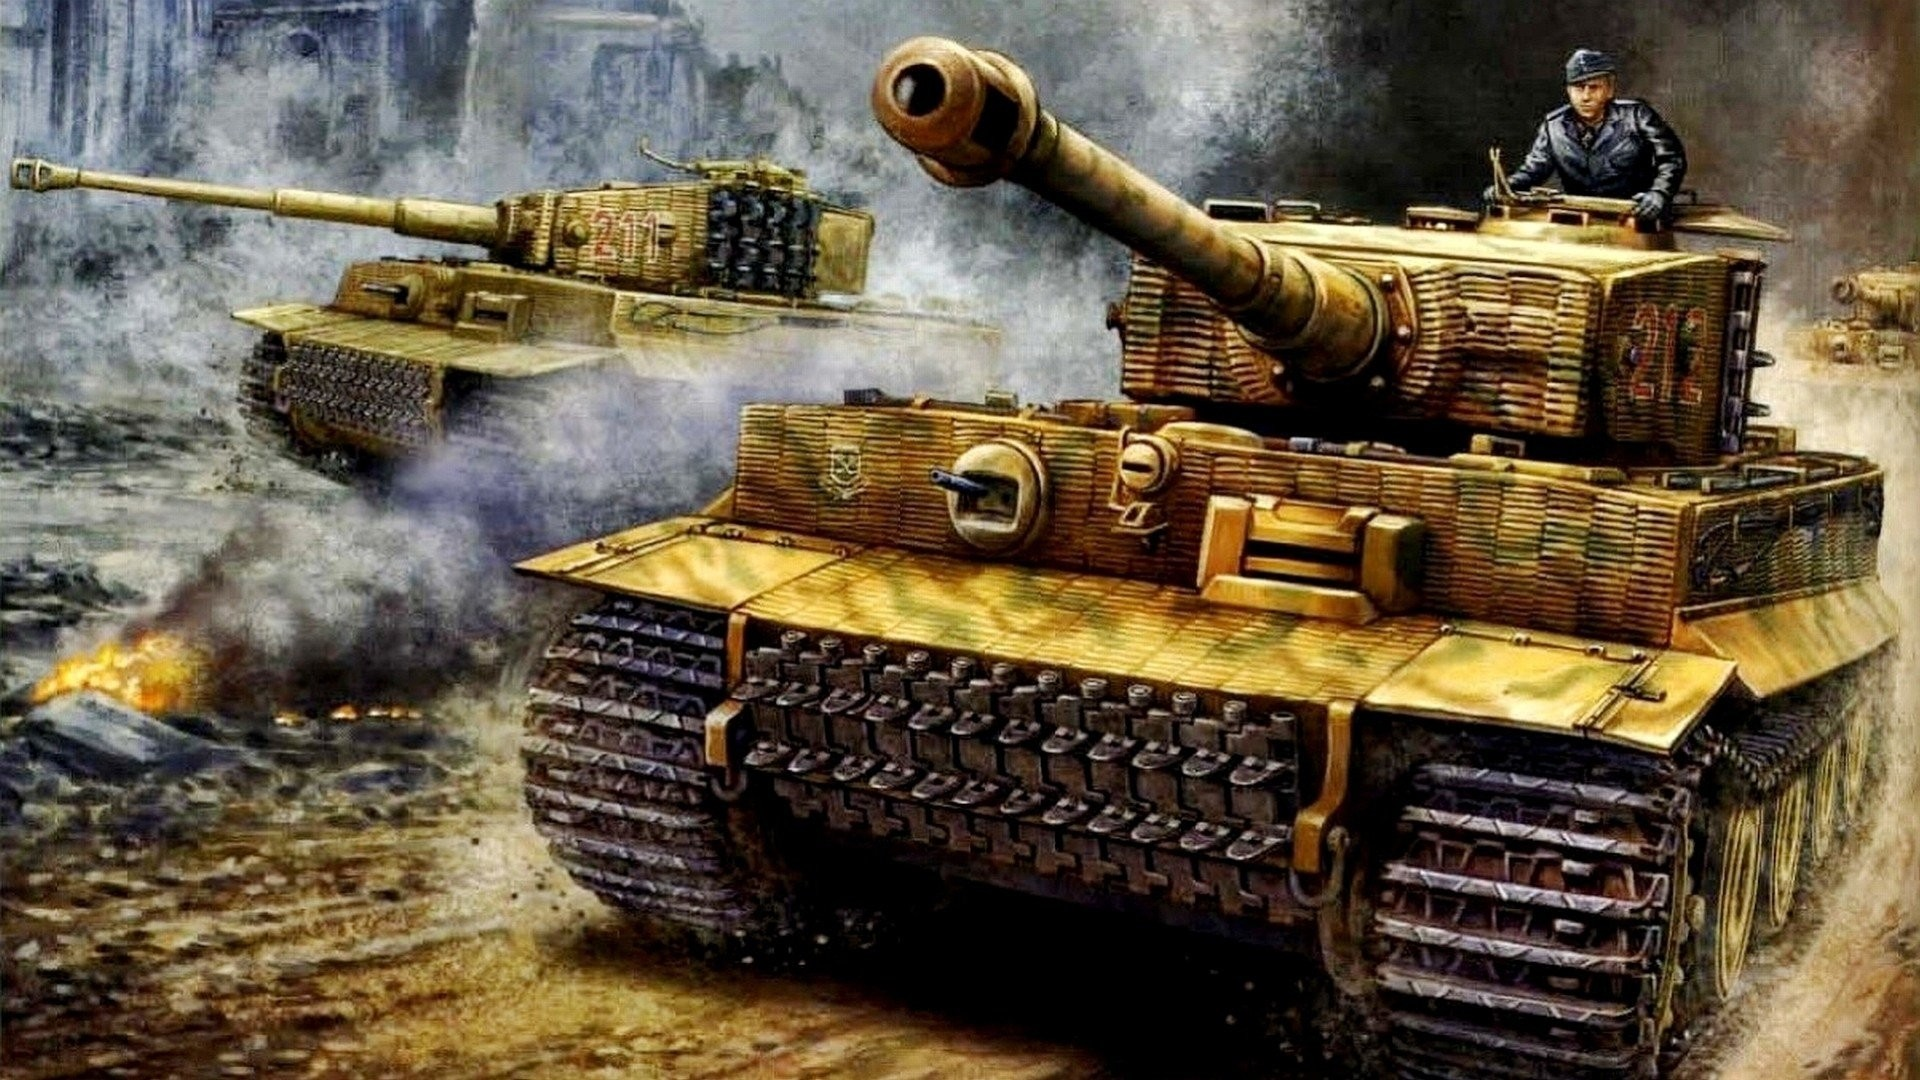 WW2 Tank Wallpapers (76+ images)